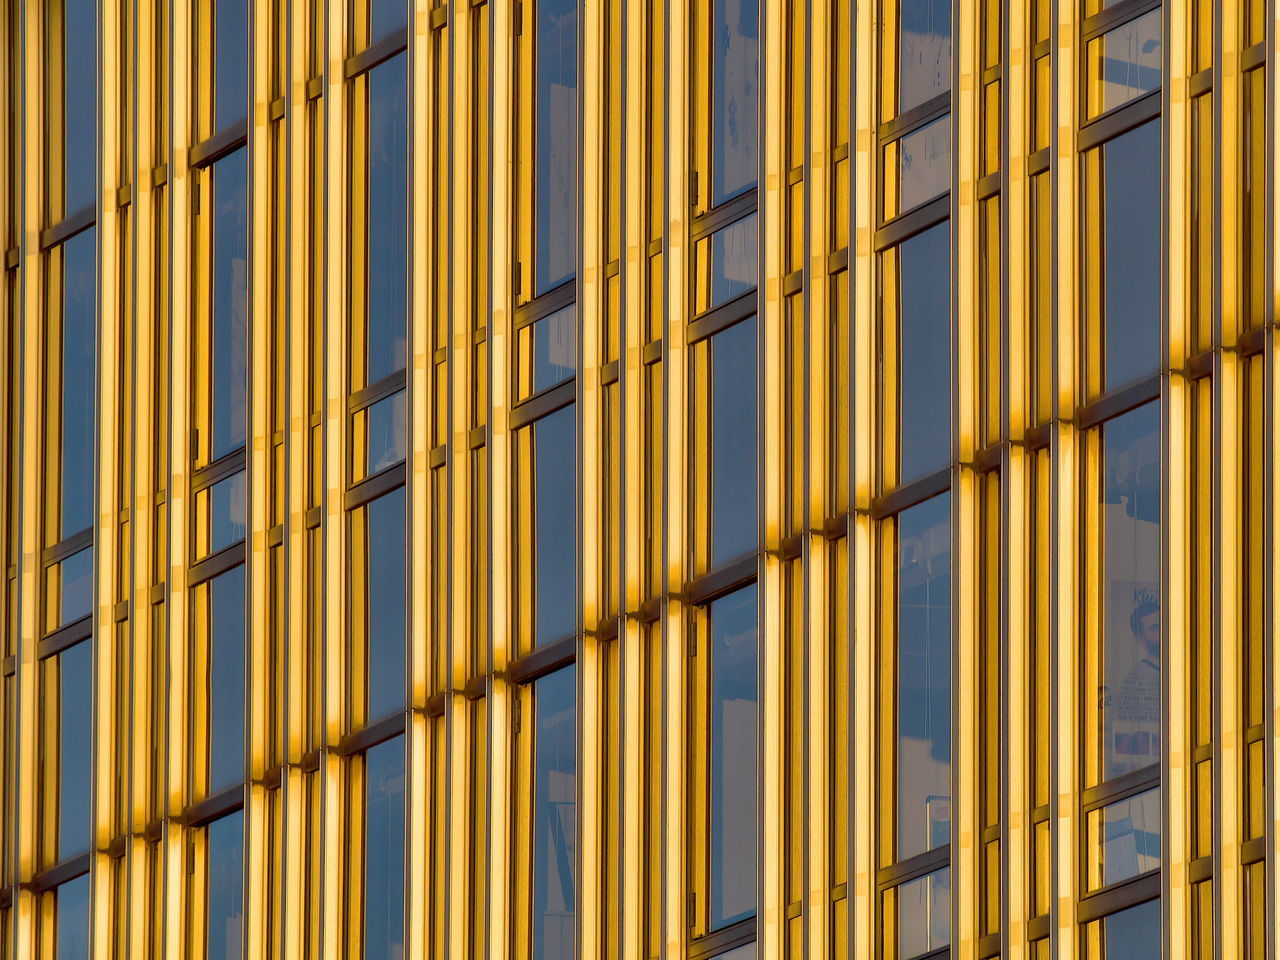 Architecture Backgrounds Building Exterior Built Structure Day Facade Building No People Outdoors Pattern Yellow